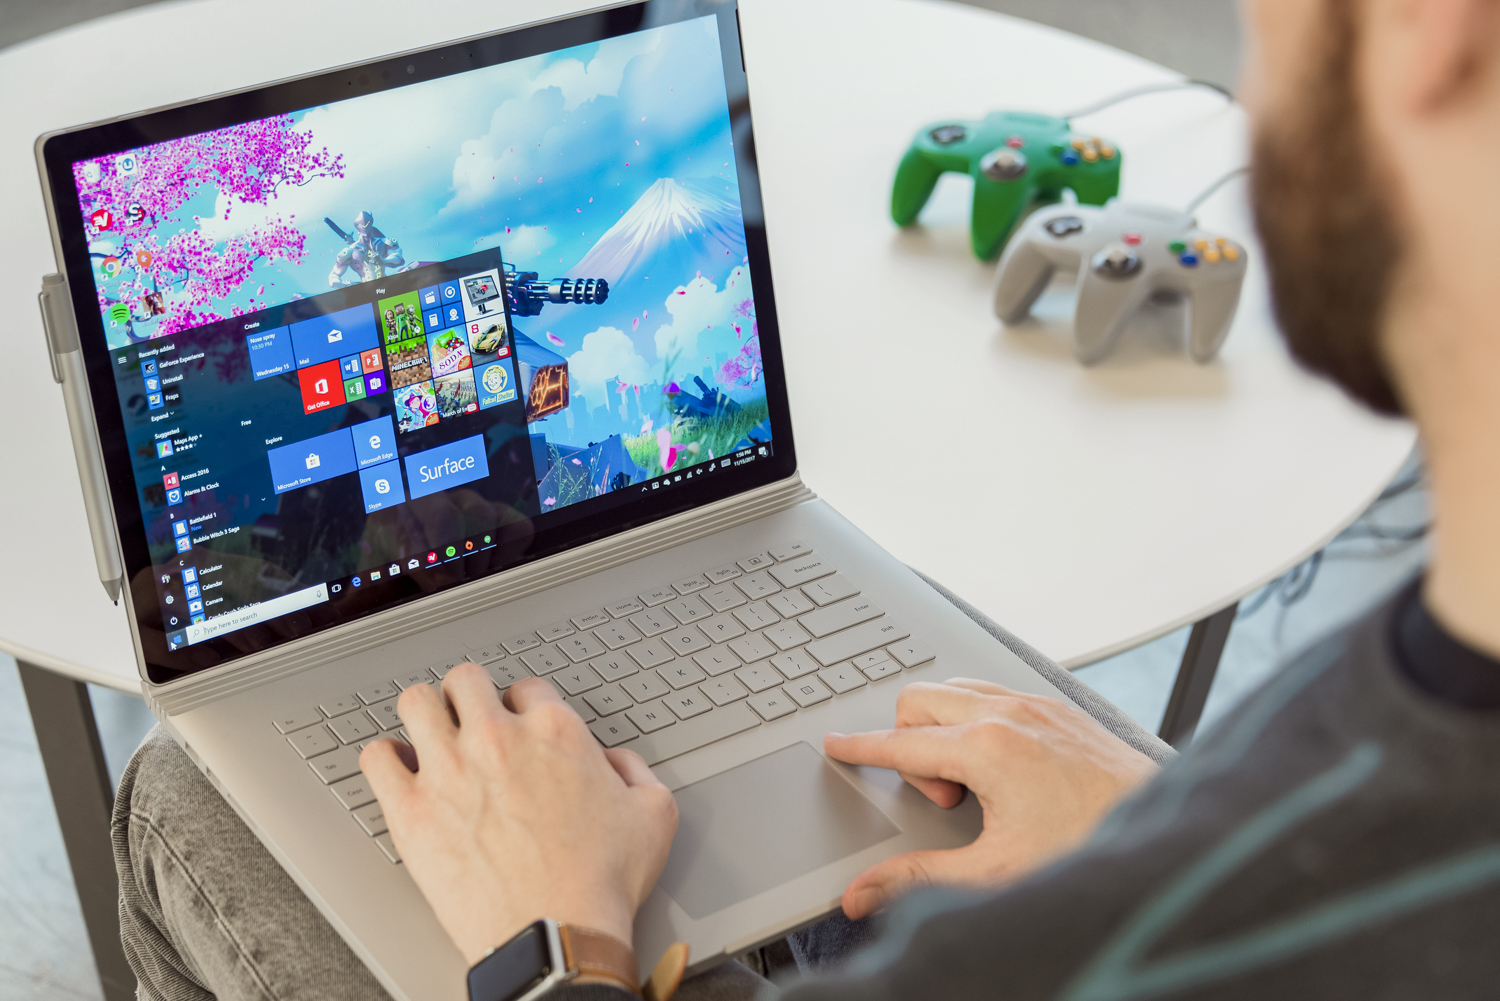 The Best Laptops for Video Editing | Digital Trends